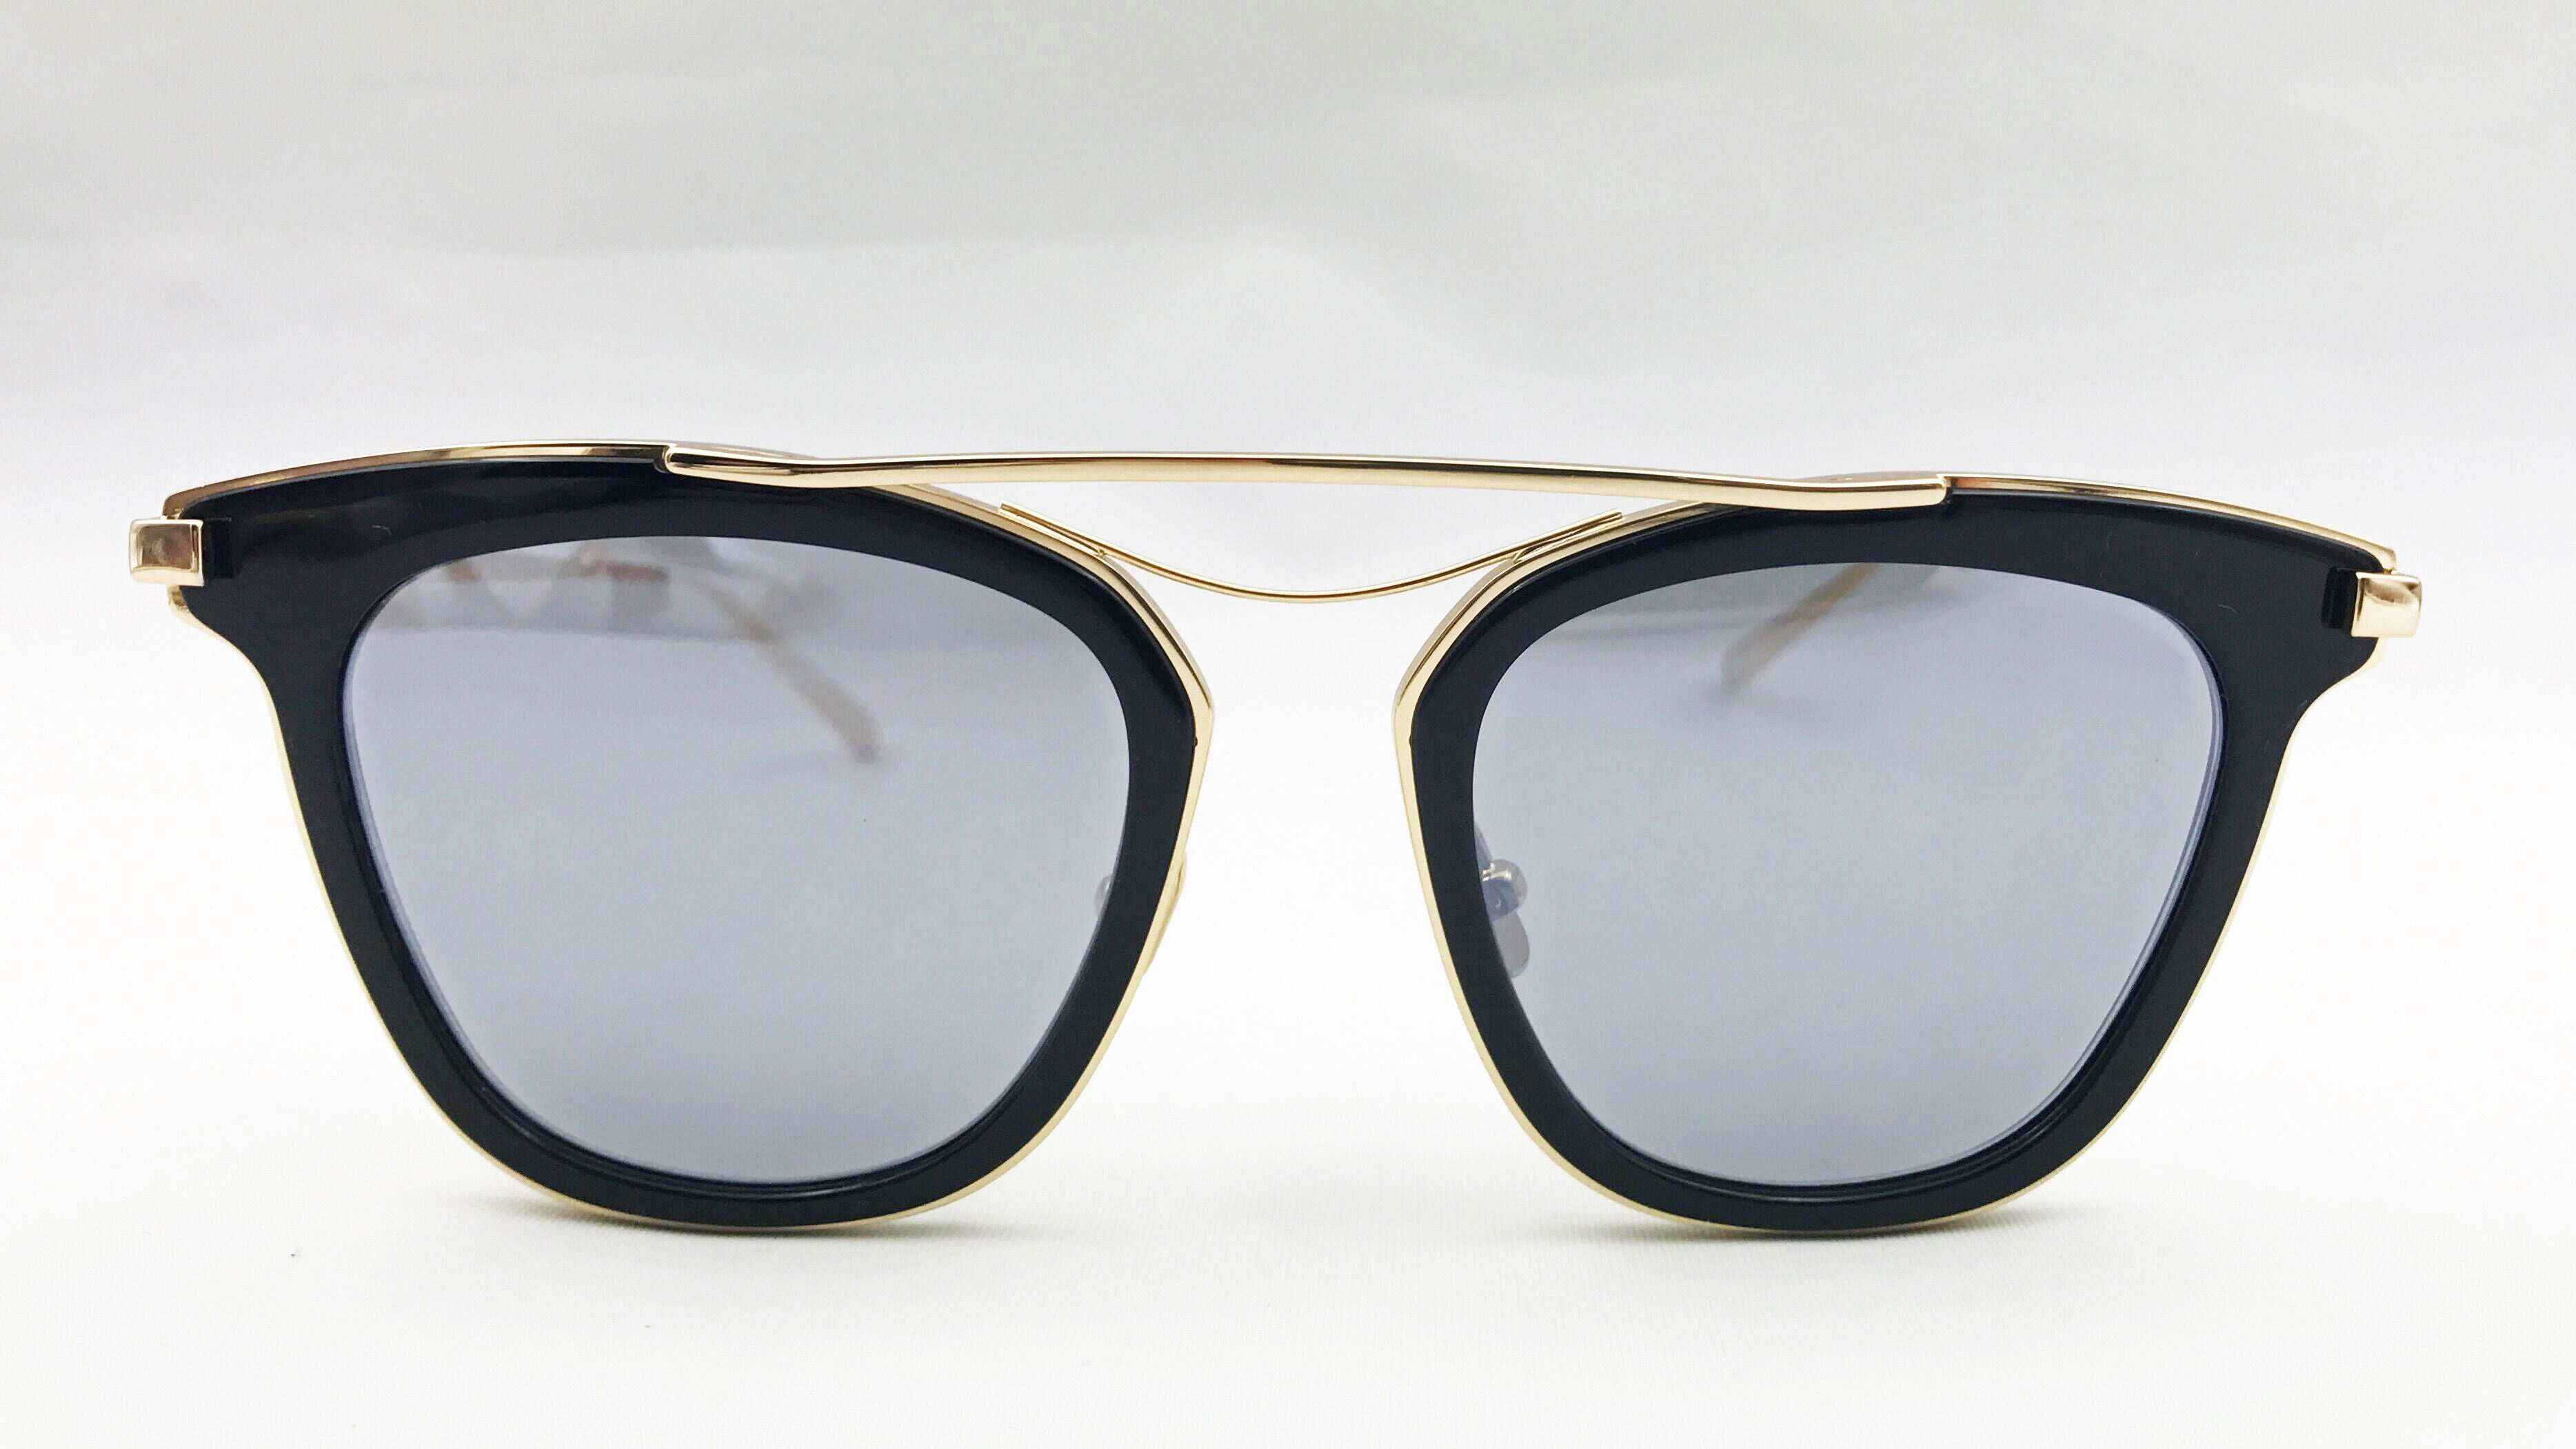 Gentle Monster Super Star Style Acetate Eyewear for Lady.